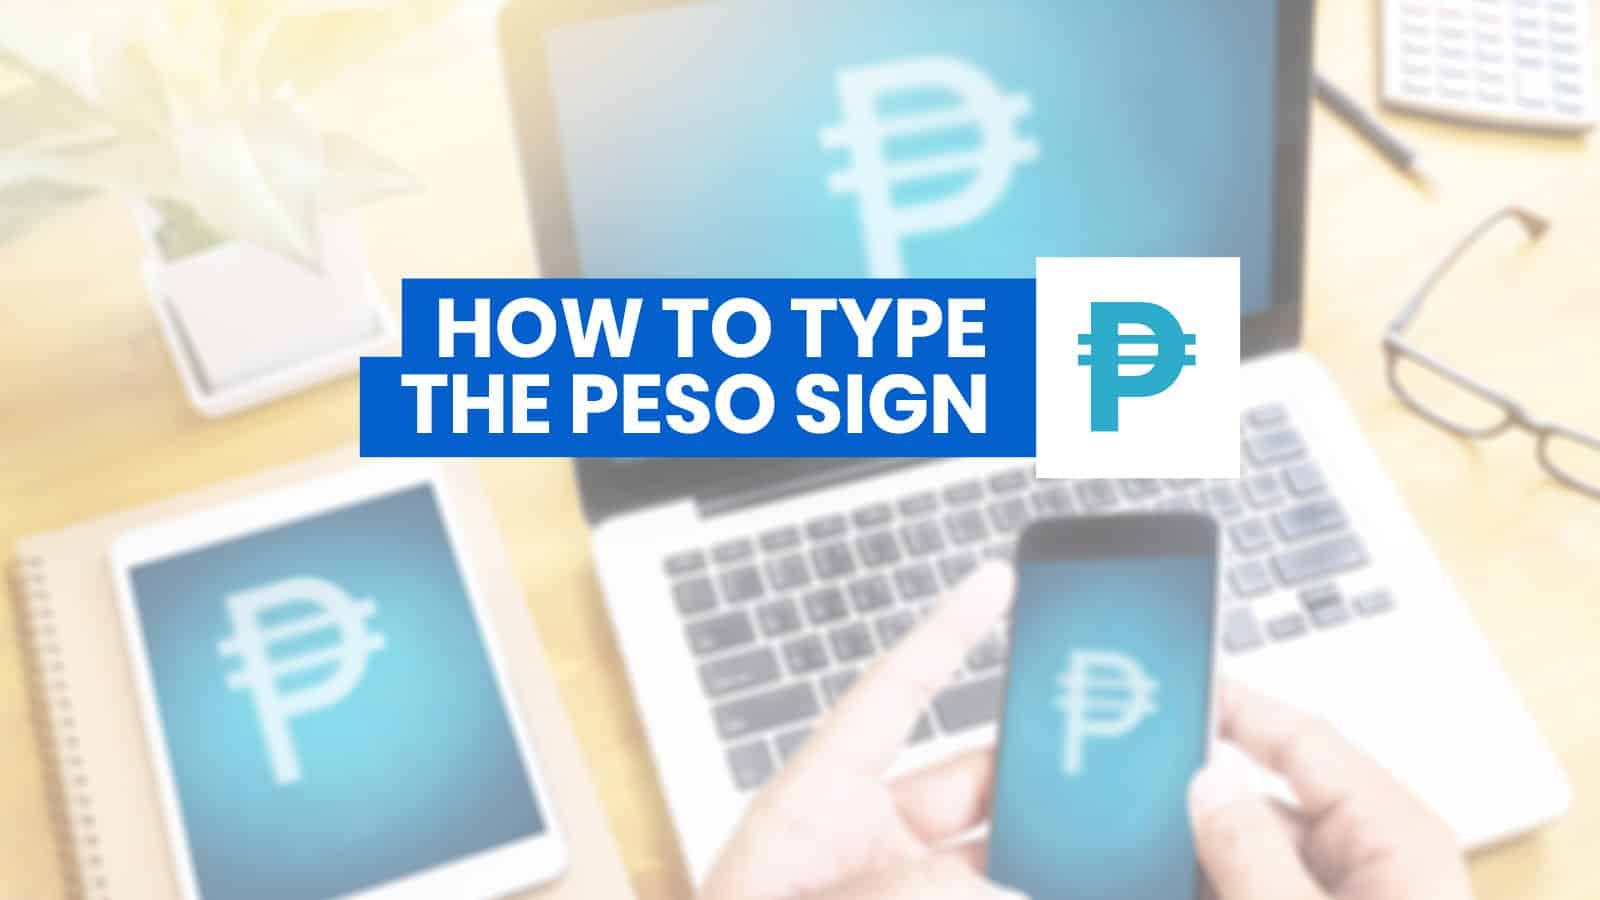 HOW TO TYPE THE PESO SIGN ₱ on iPhone, Android, Word & Computer (with Keyboard Shortcuts)